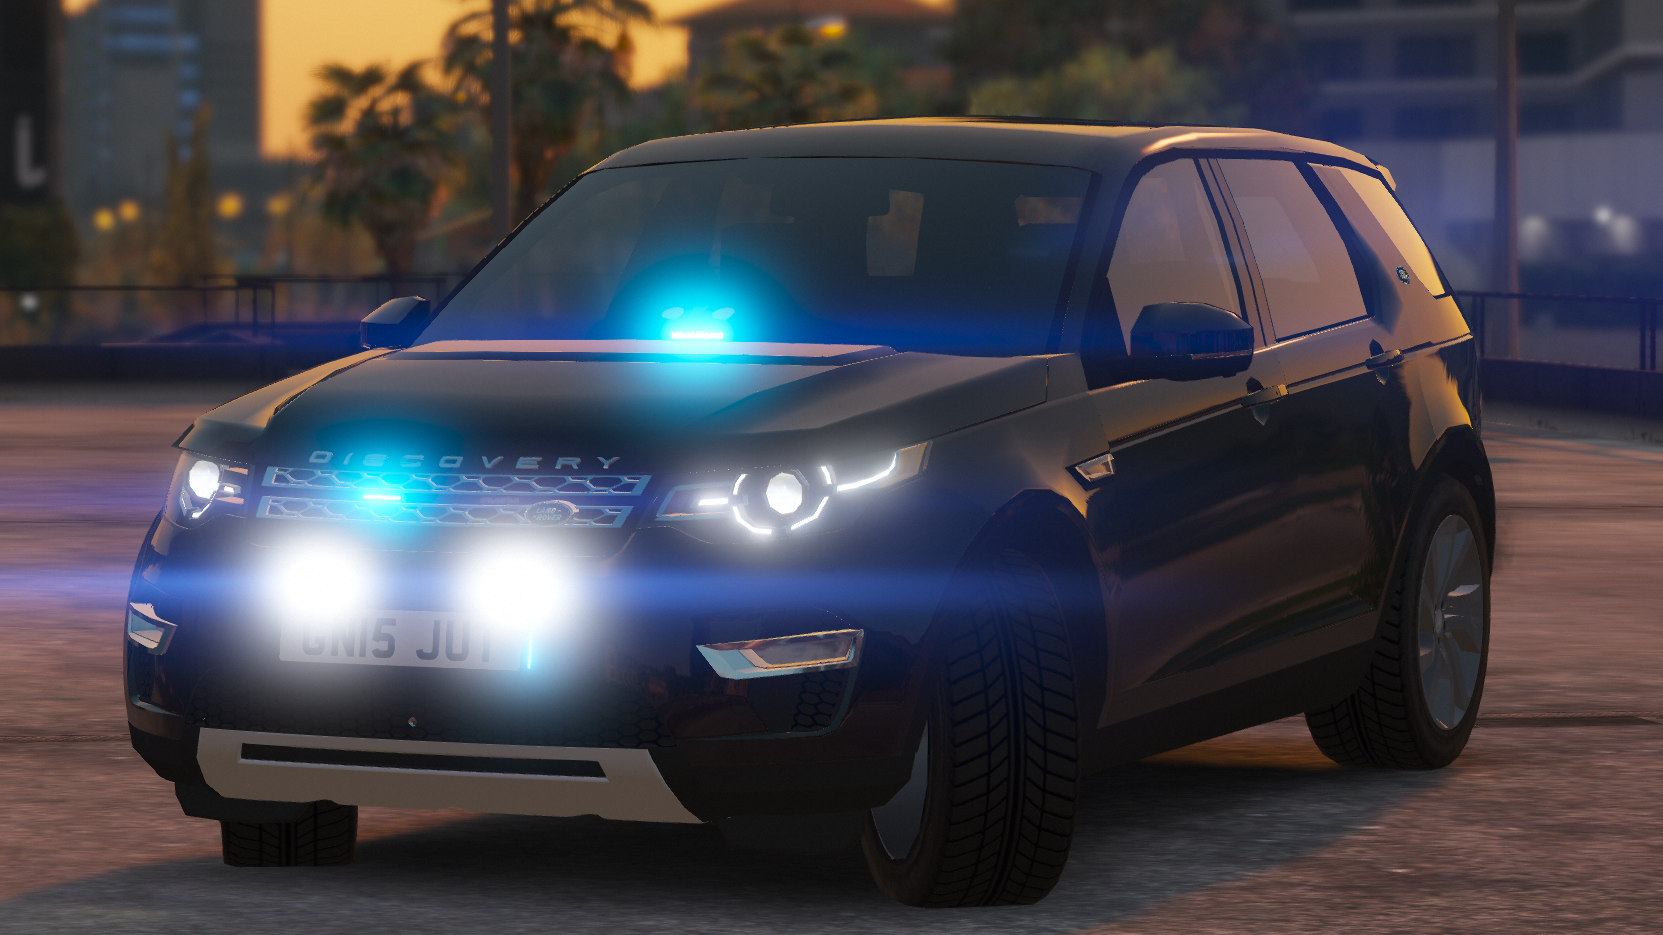 Unmarked Land Rover Discovery Sport Els Gta5 Mods Com